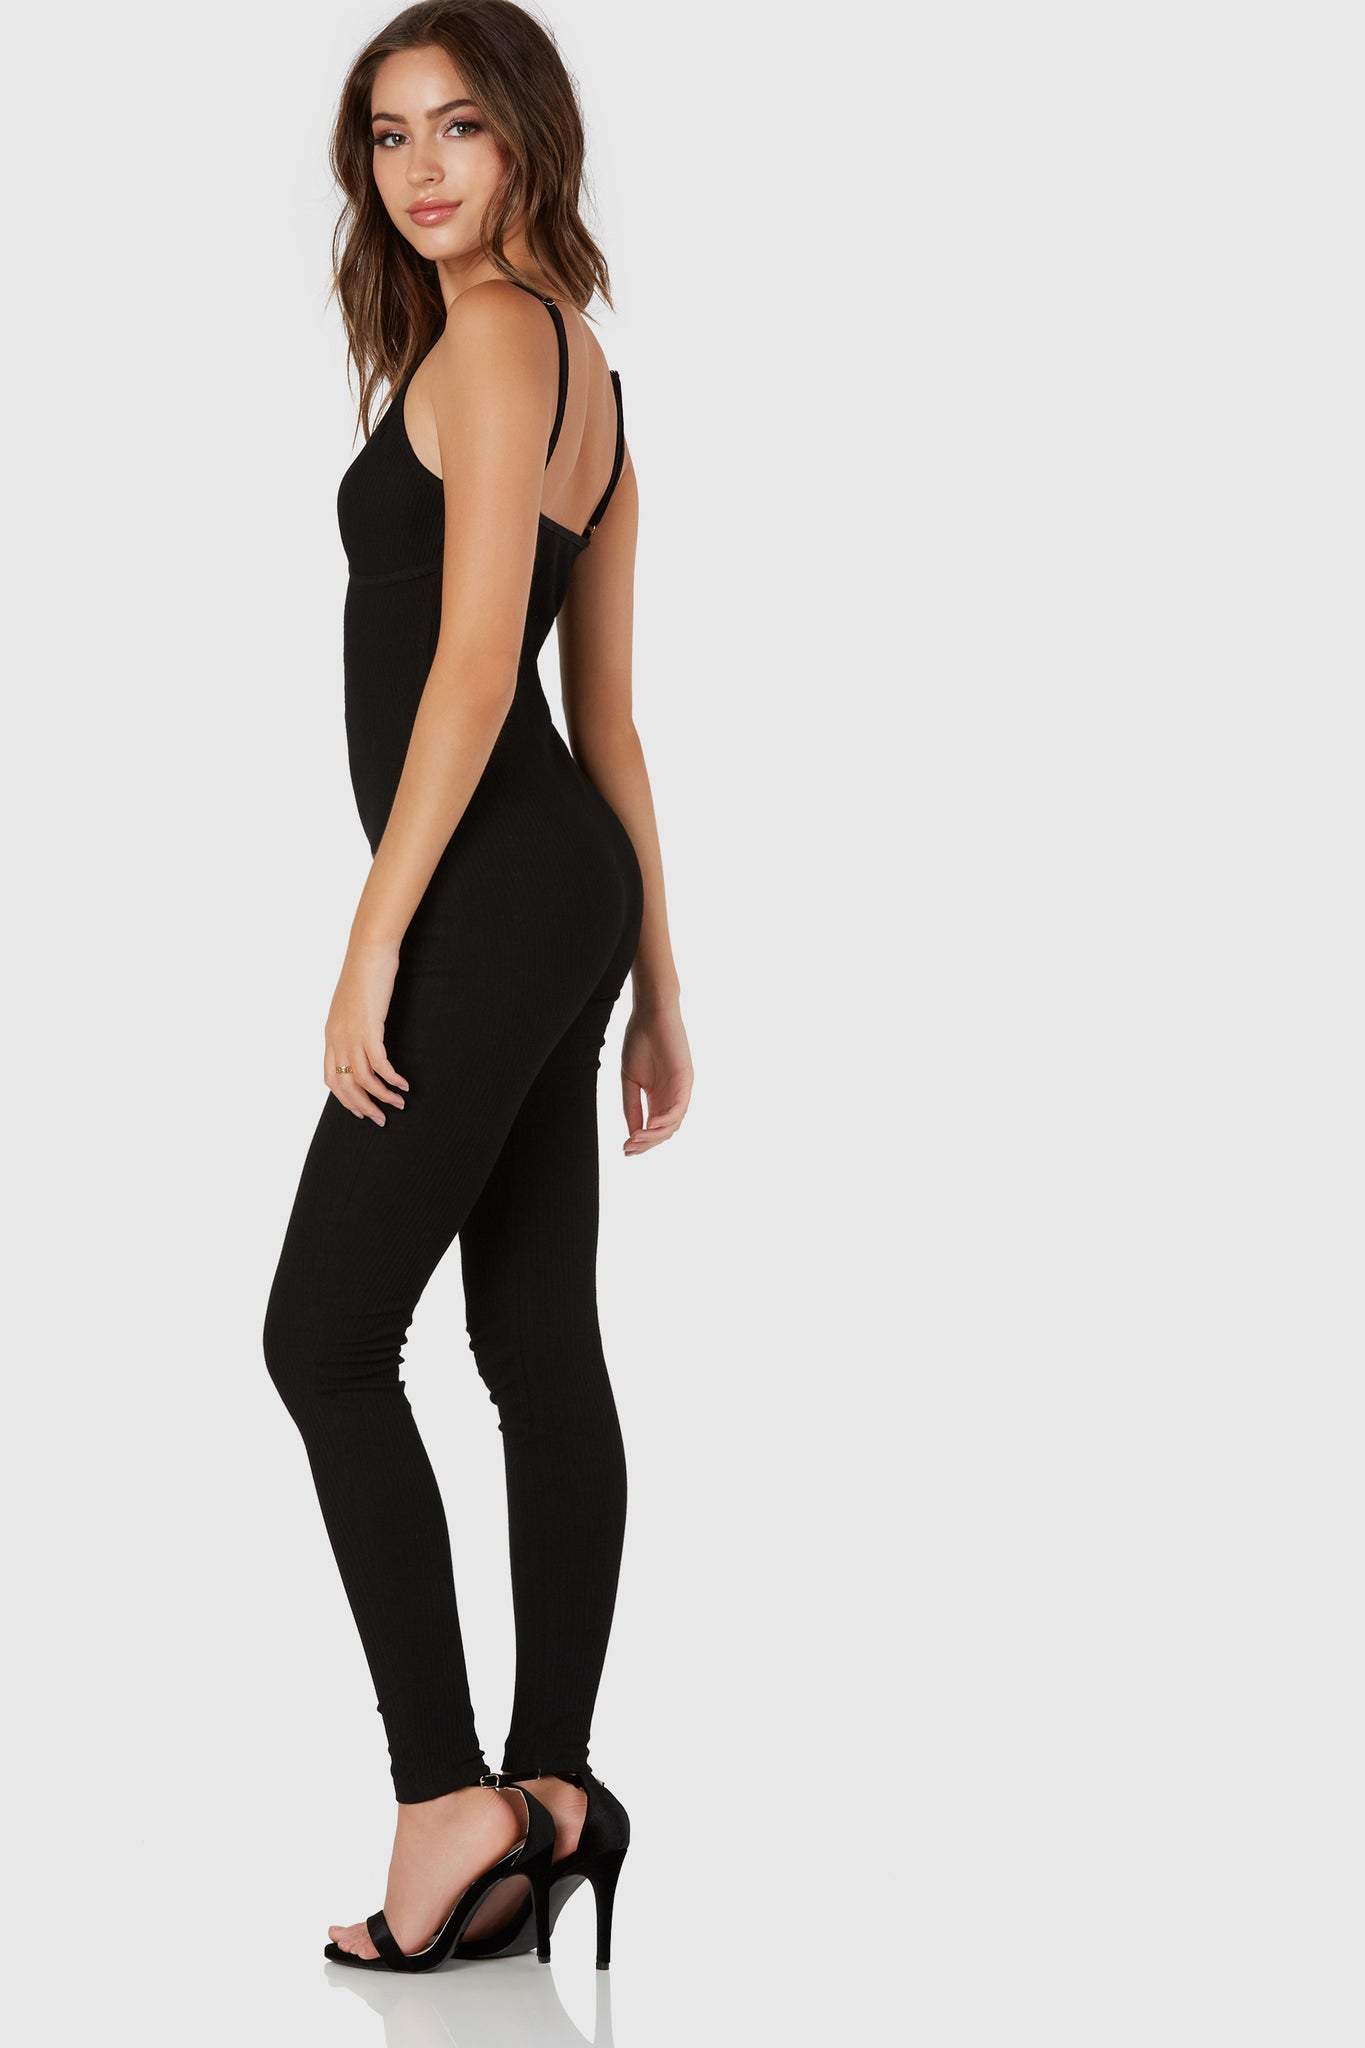 Sleeveless jumpsuit with plunging center slit. Ribbed throughout with hook and eye clasps for closure.